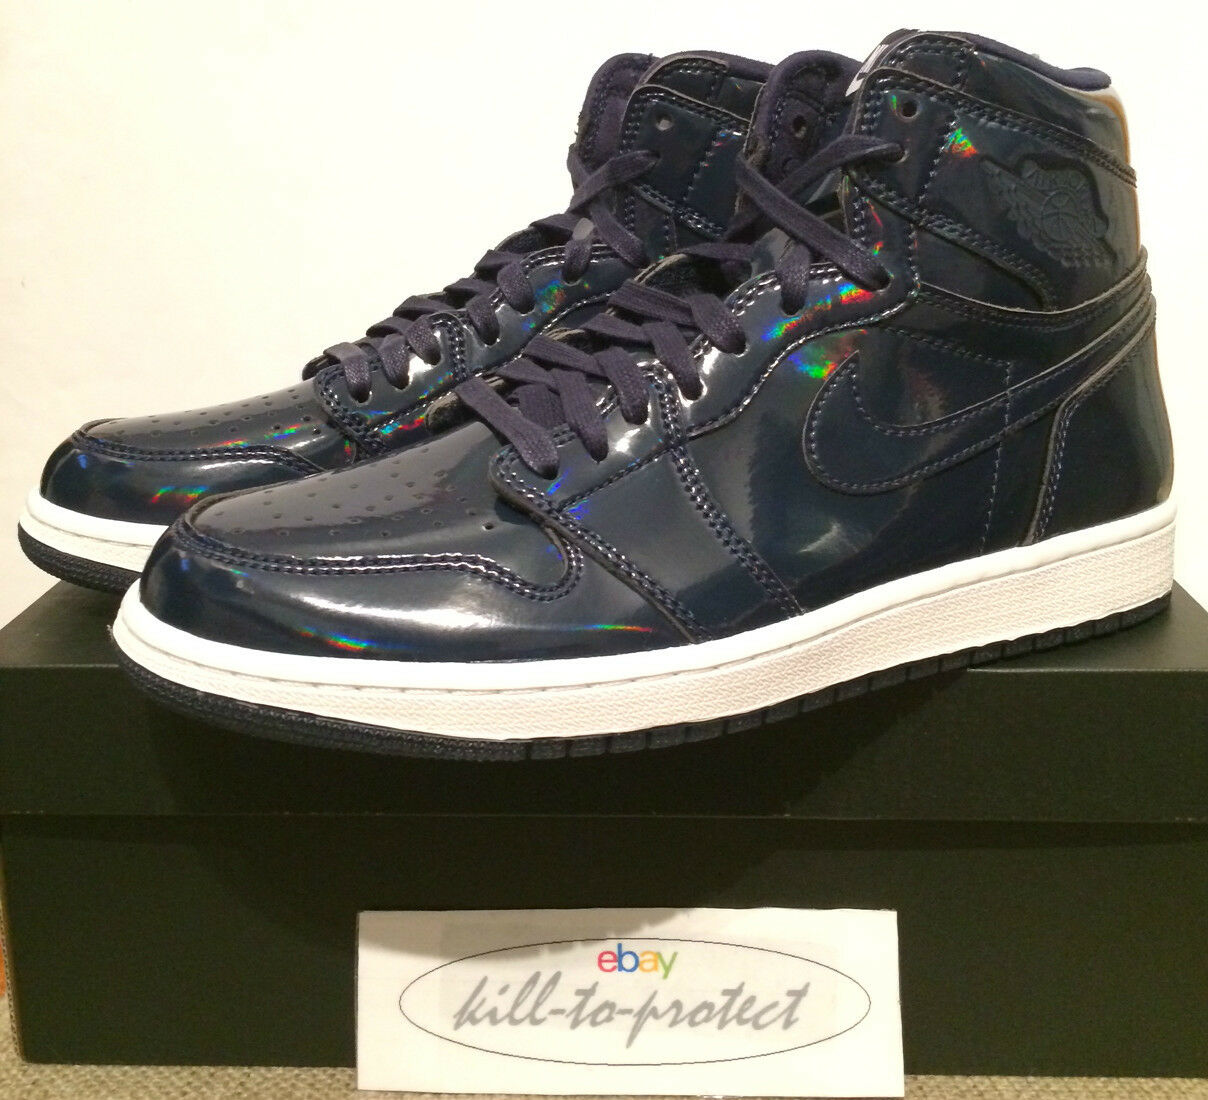 Dover STREET mercato x Nike Air Jordan 1 SZ UK US7 8 9 10 11 12 NIKE LAB DSM 2015